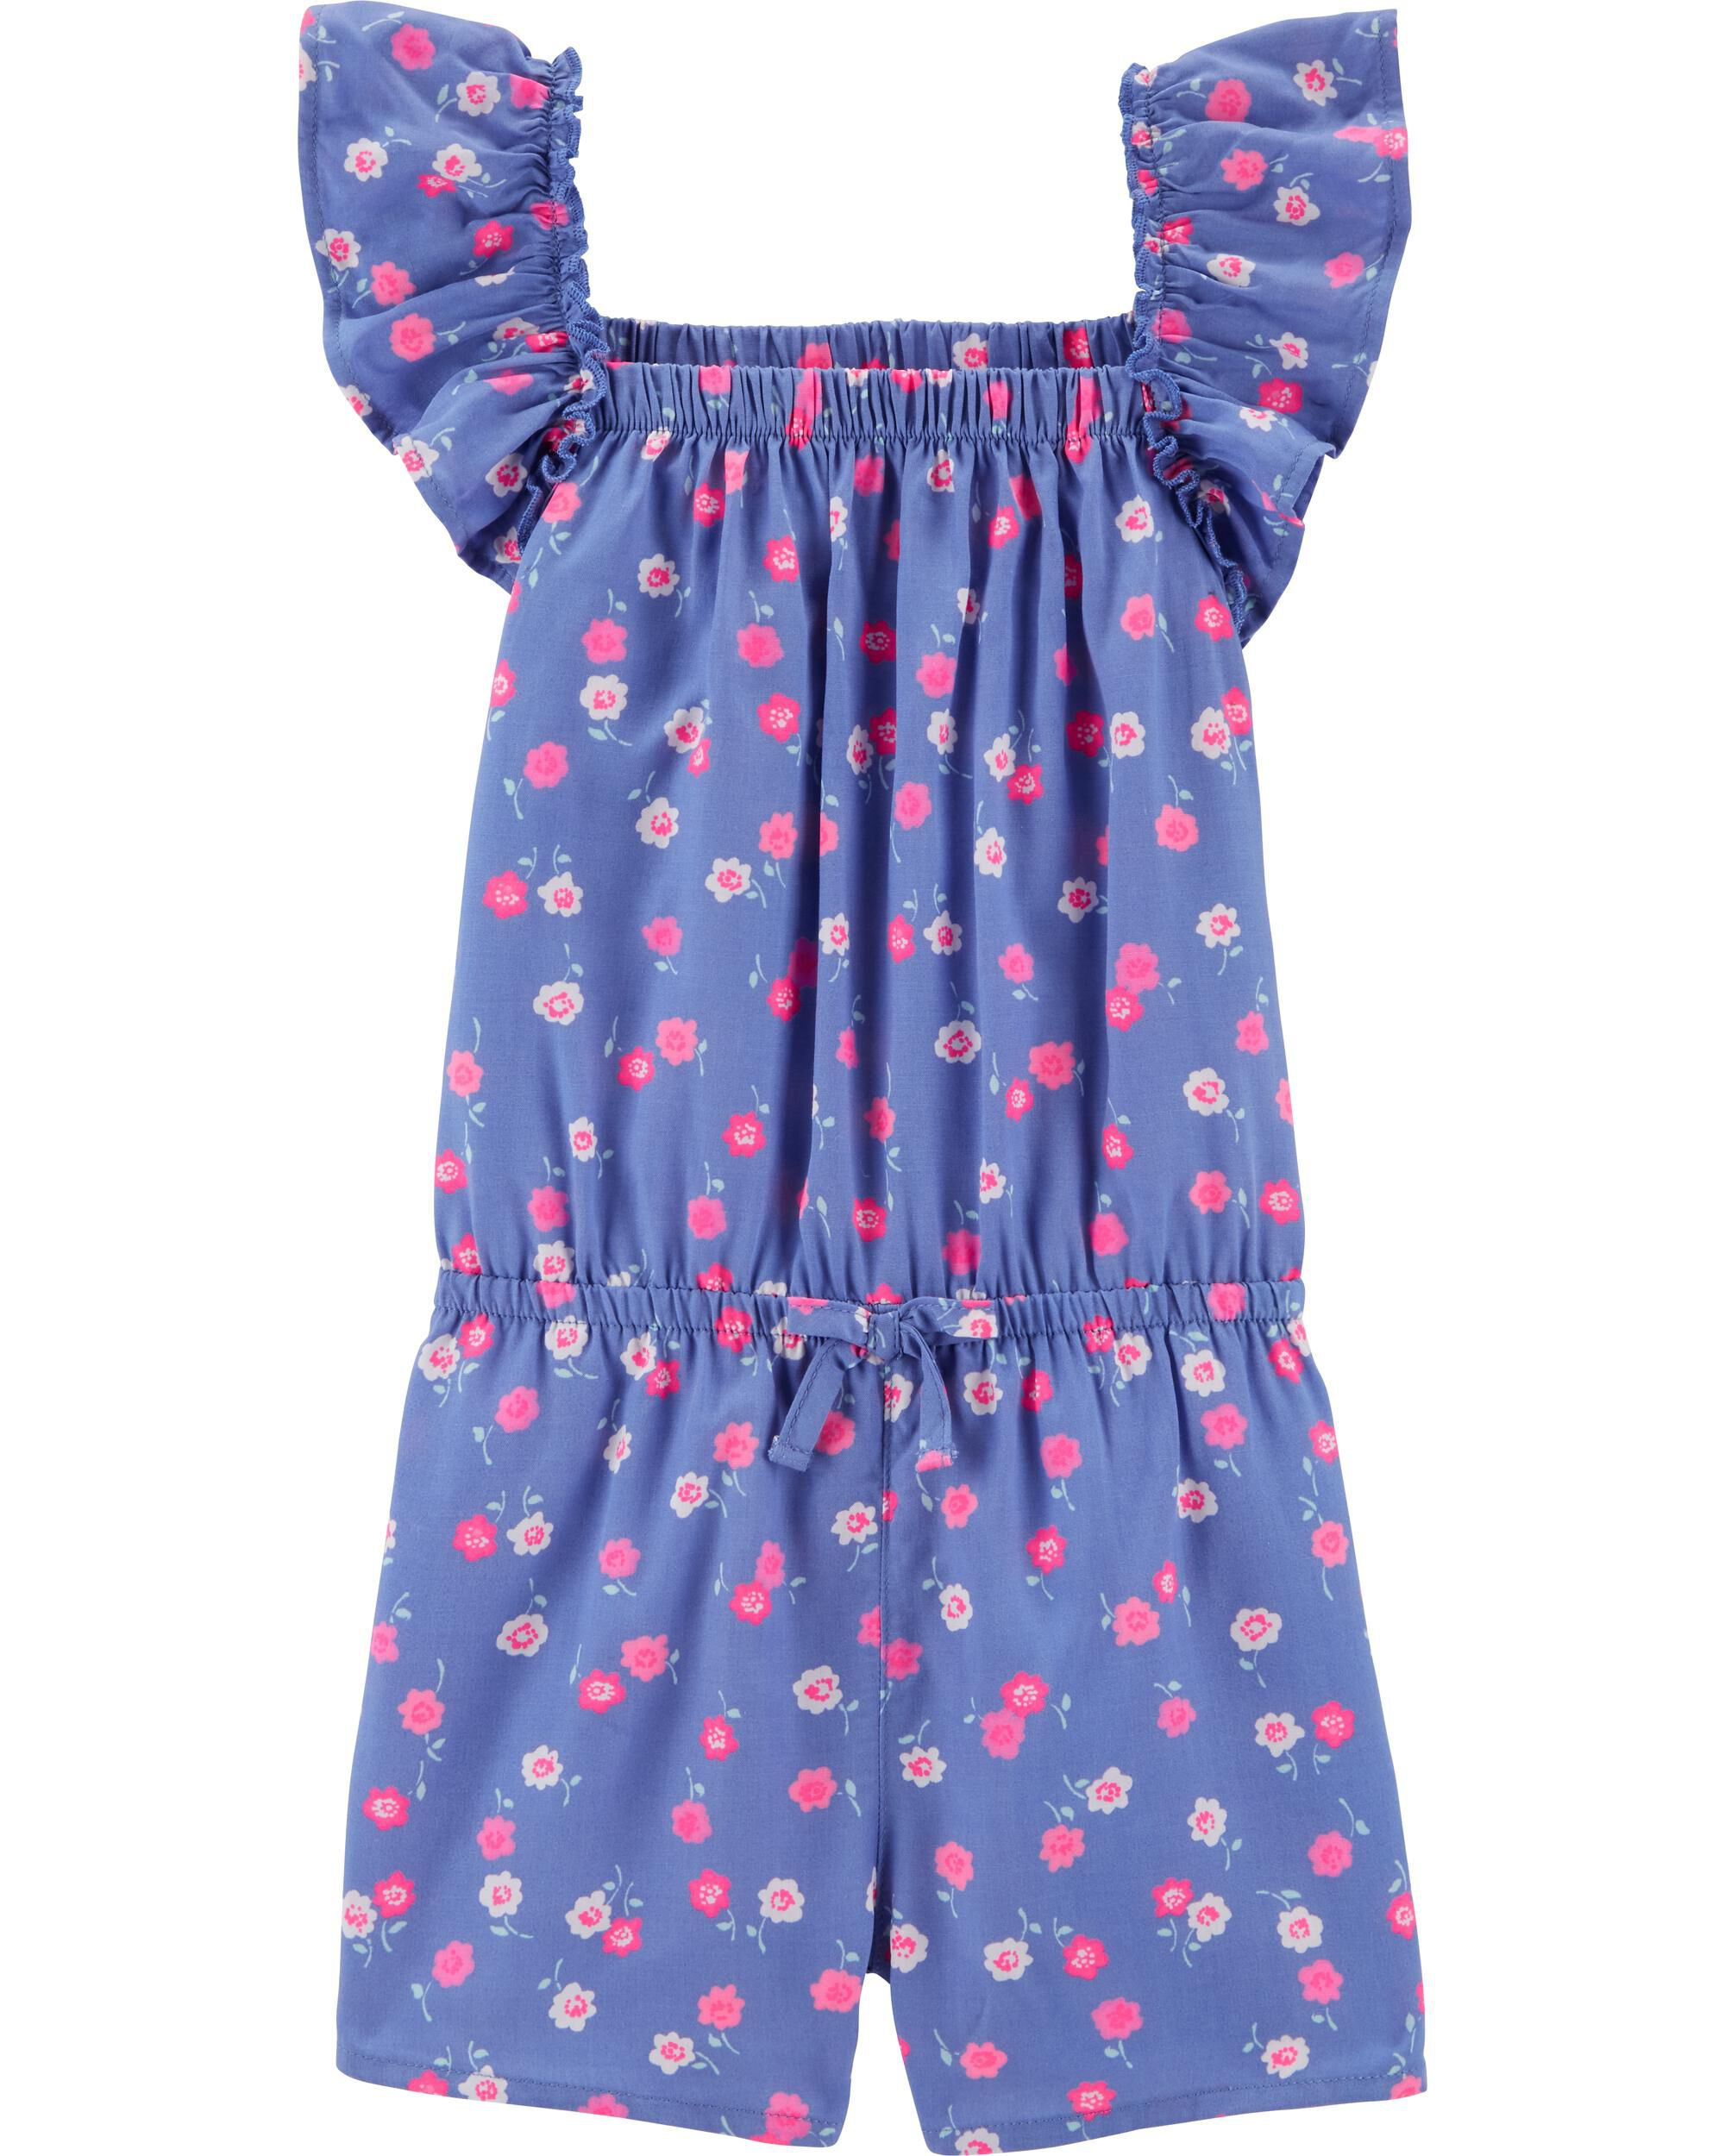 *CLEARANCE*Ruffle Floral Romper